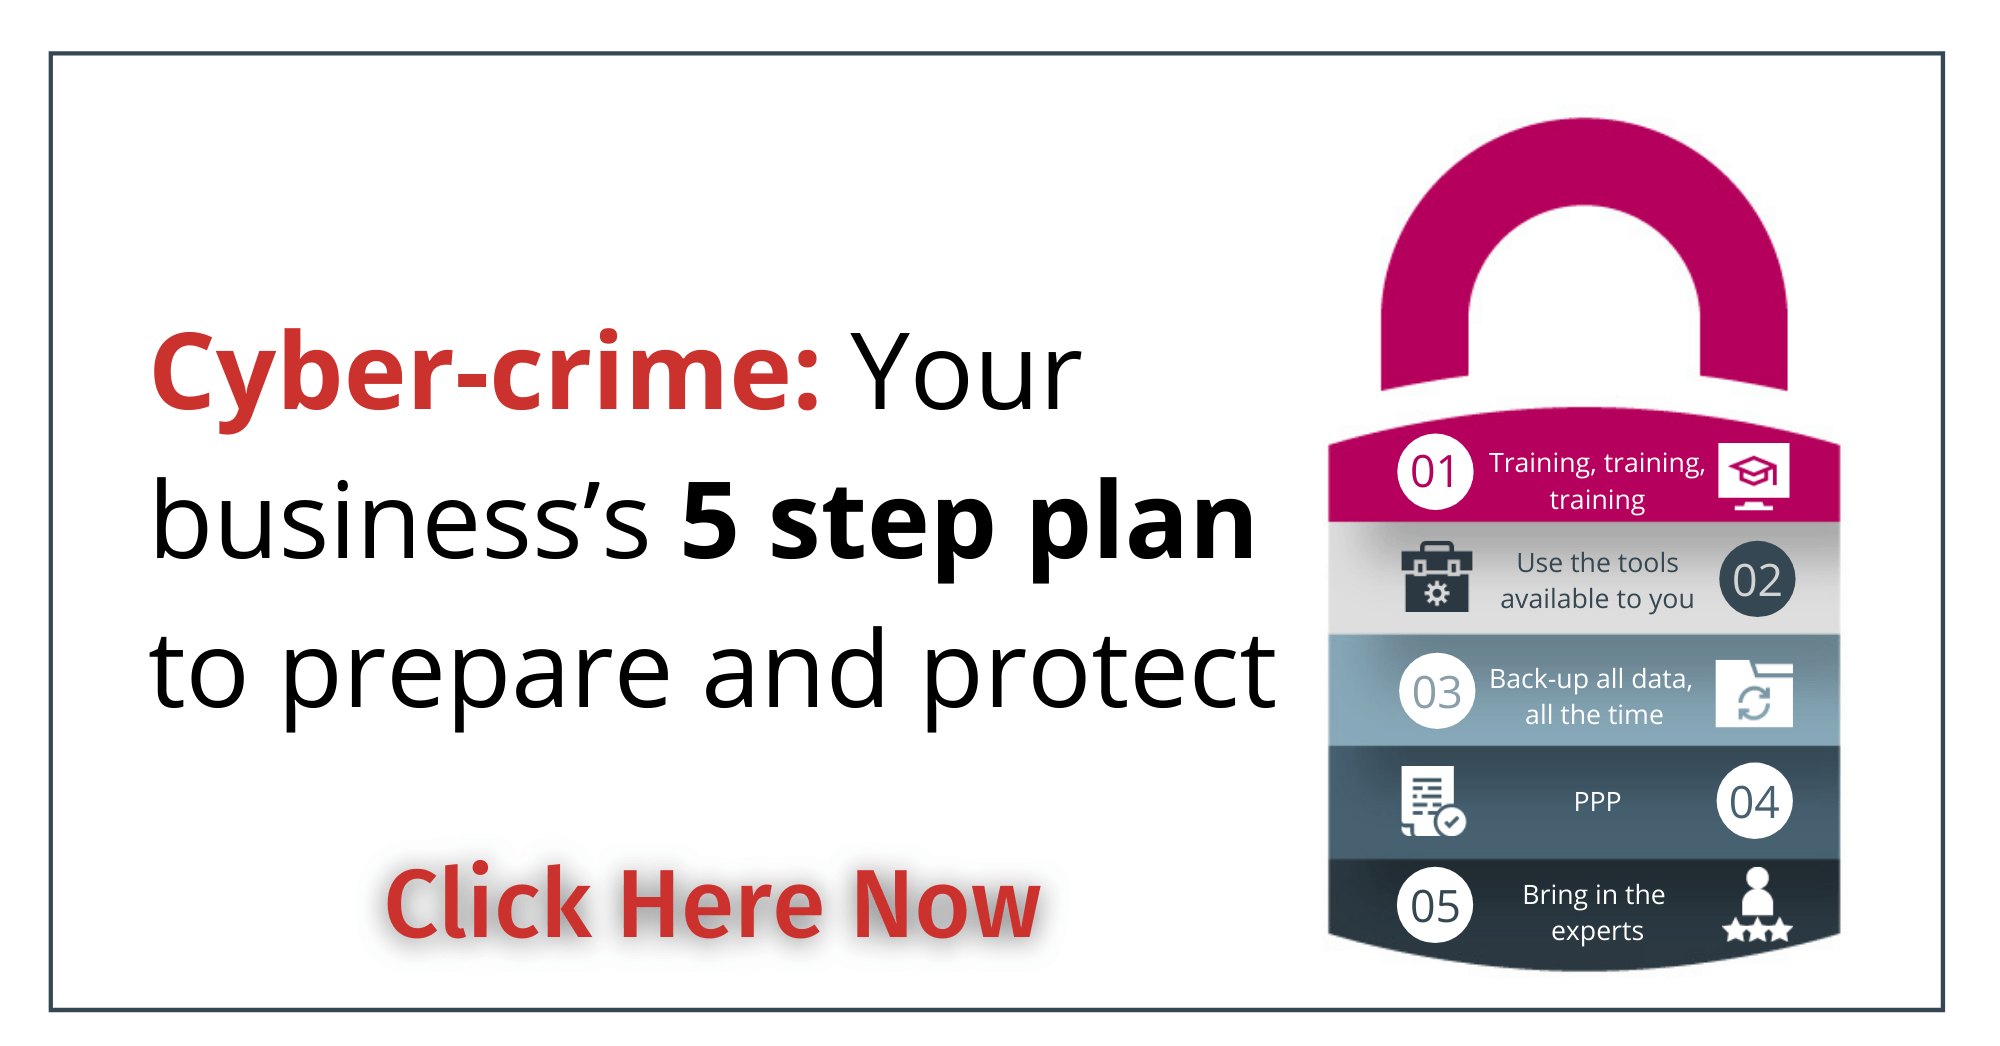 Guide download, cybersecurity, 5 step plan